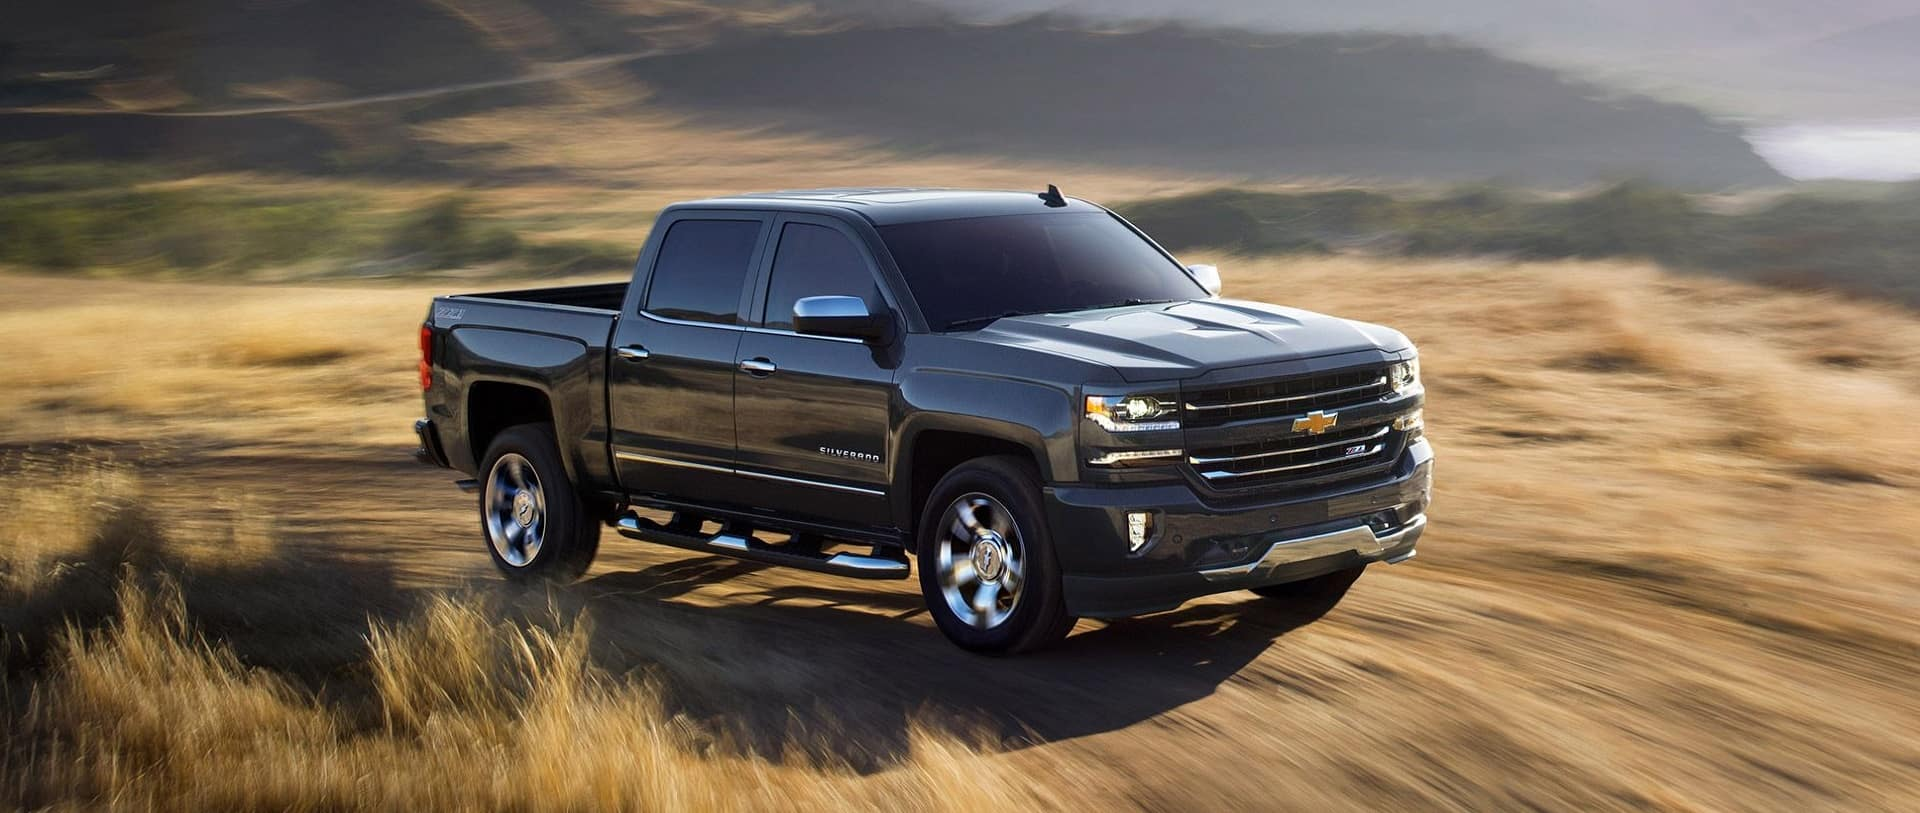 2019 Chevrolet Silverado LD outdoors